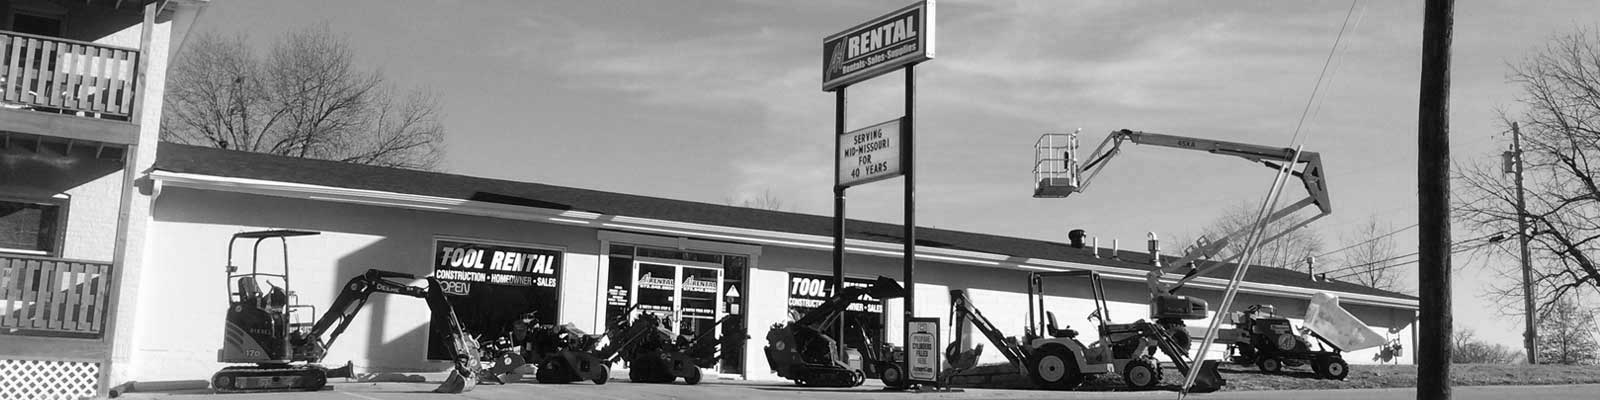 Tool rentals serving Mexico Missouri, Jefferson City, Fulton MO, Centralia, Ashland, Boonville, California